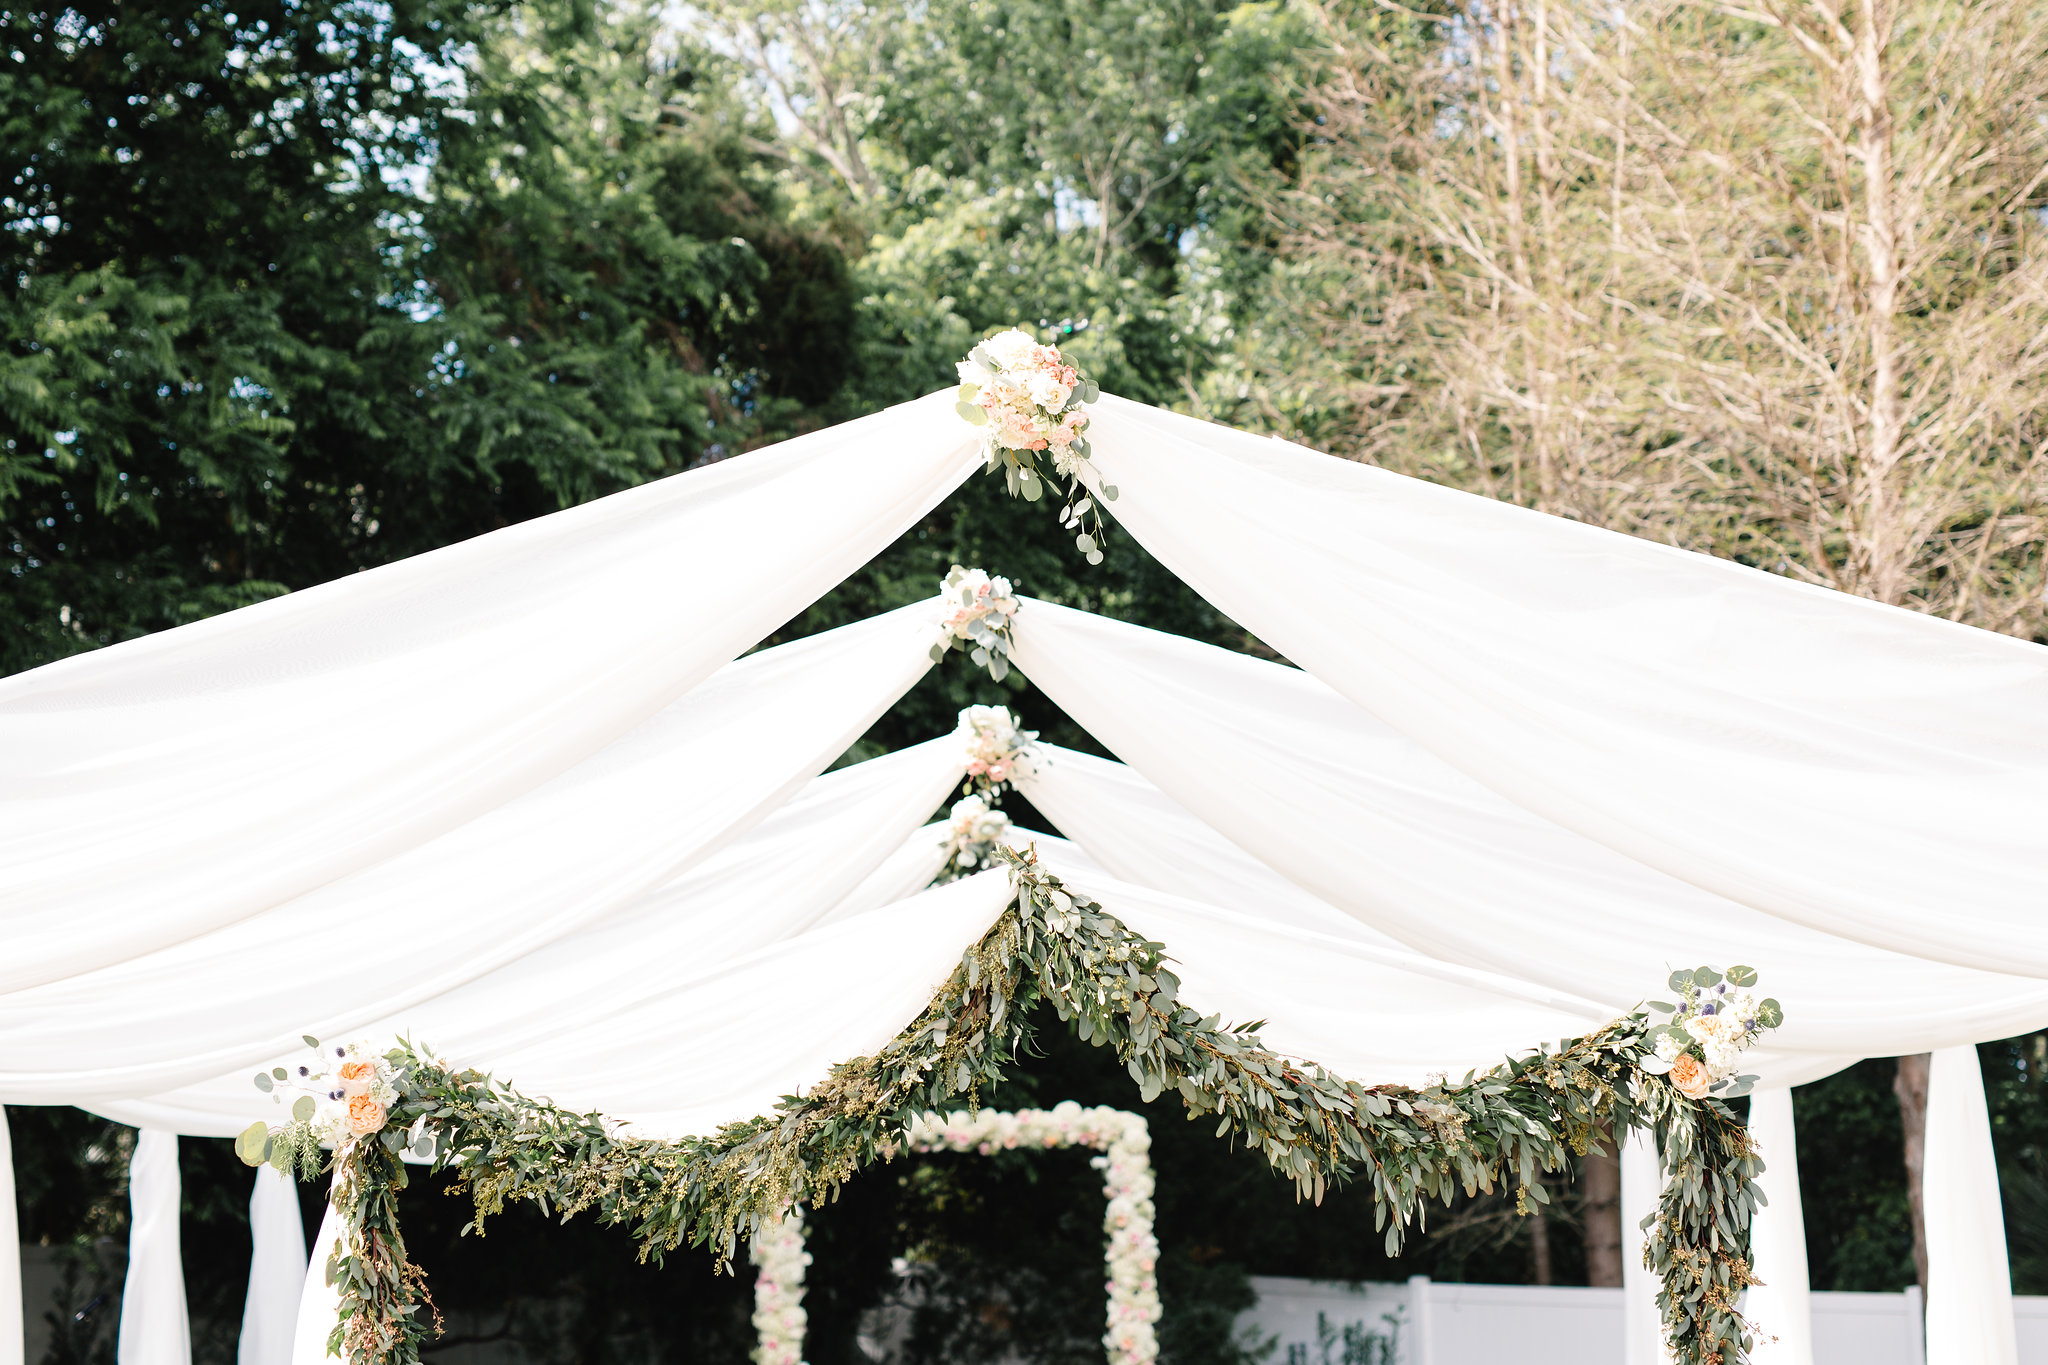 Arched ceremony draping with greenery  Blush & White Garden wedding at Luxmore Grande Estate in Orlando, Florida  Orlando Wedding Planner Blue Ribbon Weddings  Orlando Wedding Photographer JP Pratt Photography  Wedding Ceremony & Reception at Luxmore Grande Estate